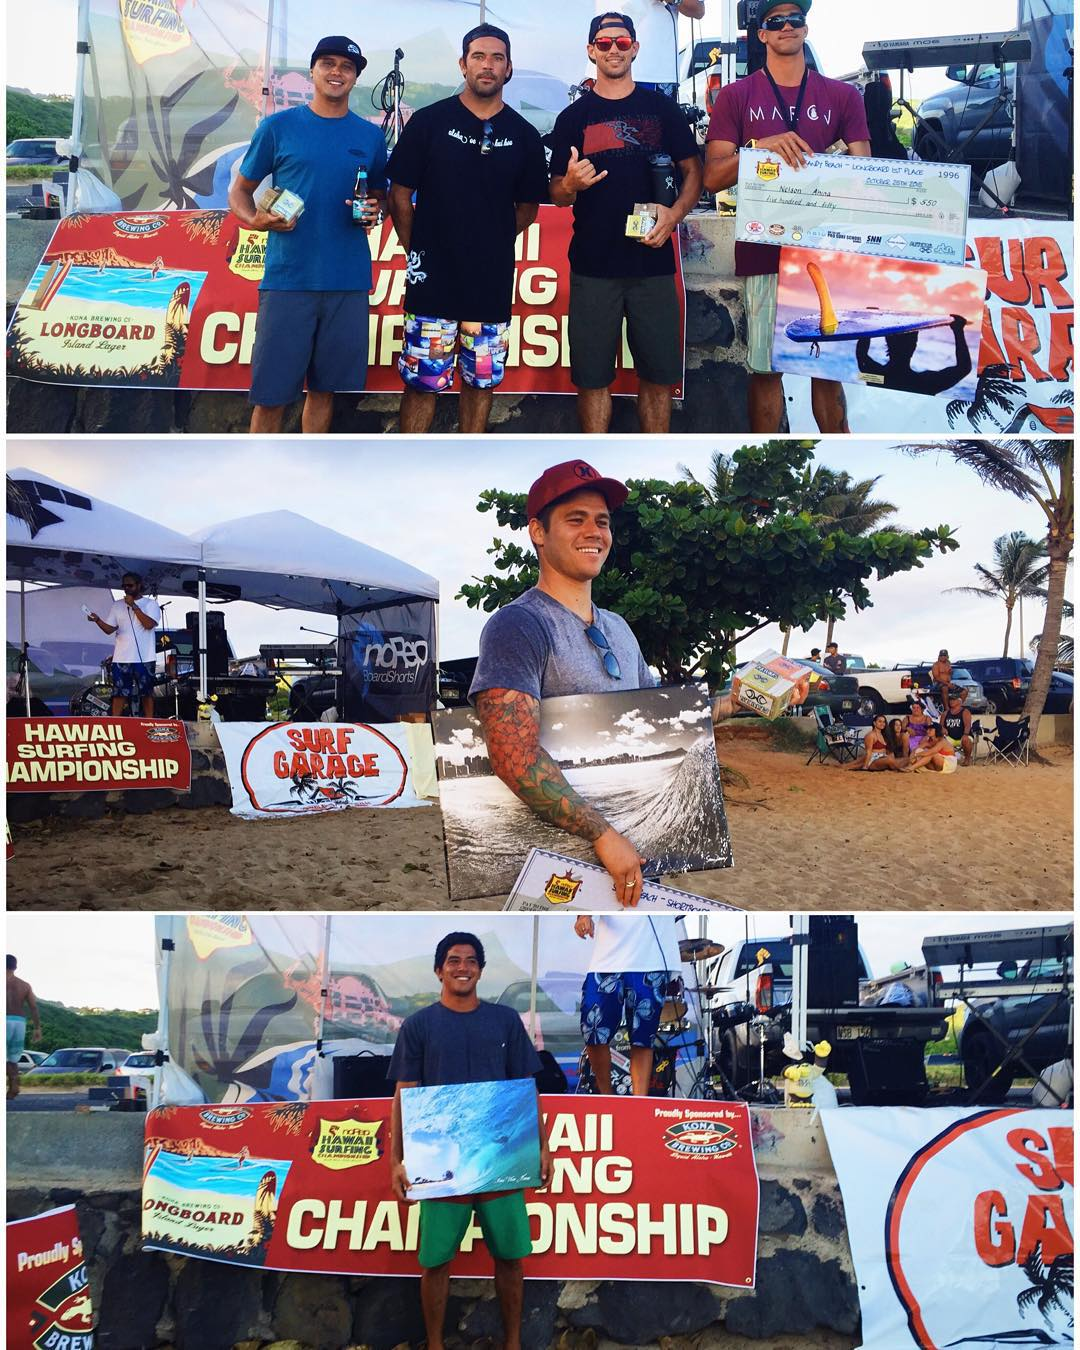 What an epic finish to the Hawaii Surfing Championship! The conditions at Sandy Beach could not have been more perfect. Congratulations to all of our finalists for the longboard and shortboard divisions!  Longboard: 1st Nelson Ahina, 2nd Makamae...